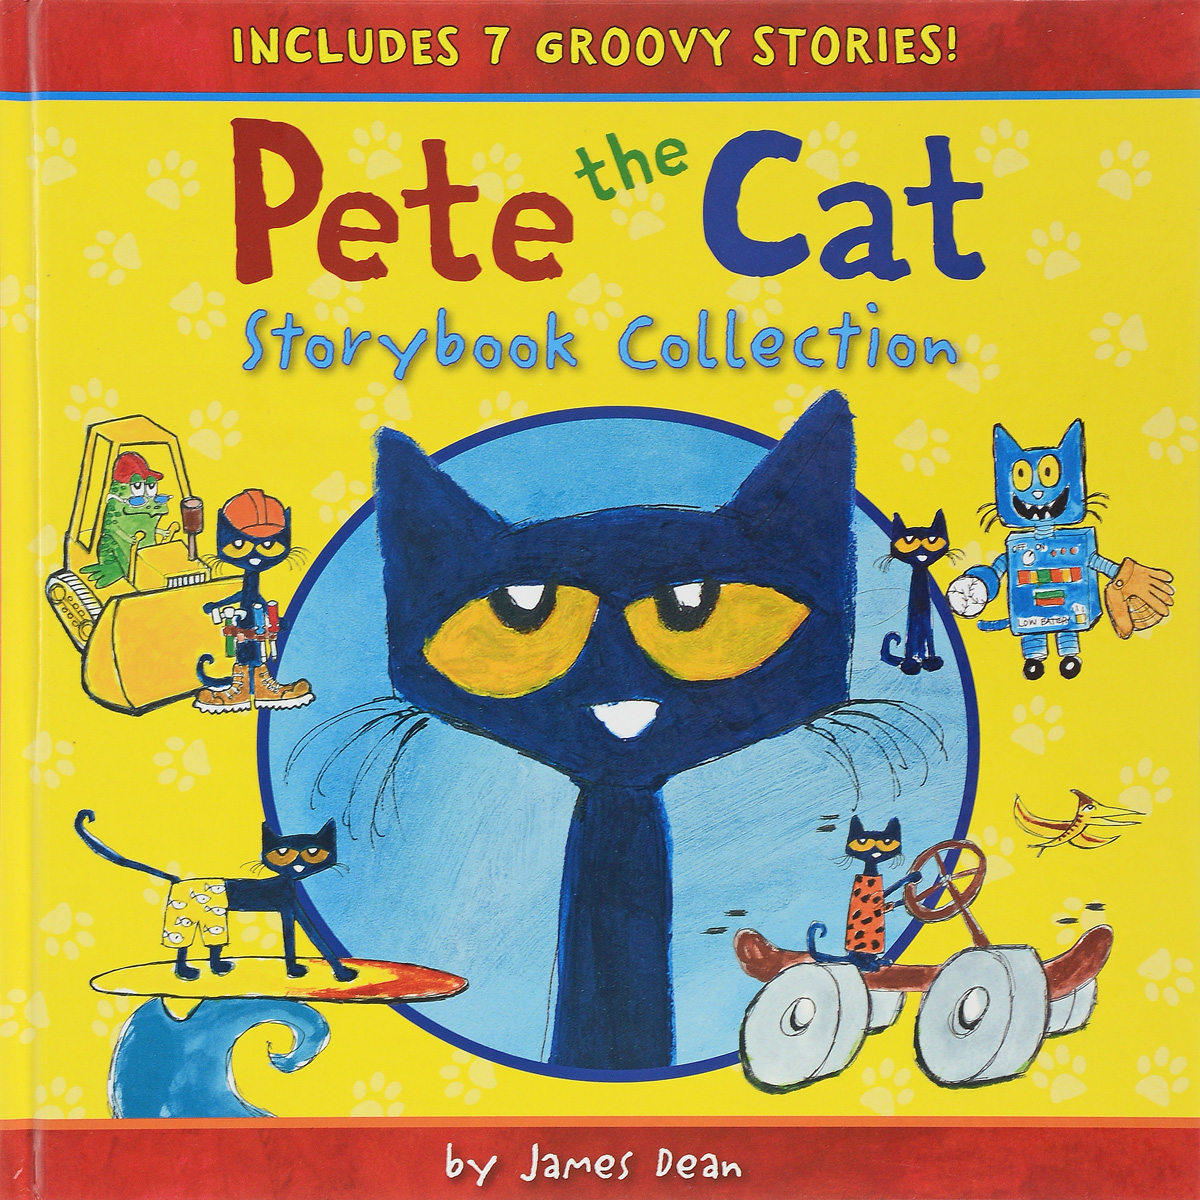 Pete the Cat Storybook Collection: 6 Groovy Stories! the unadulterated cat